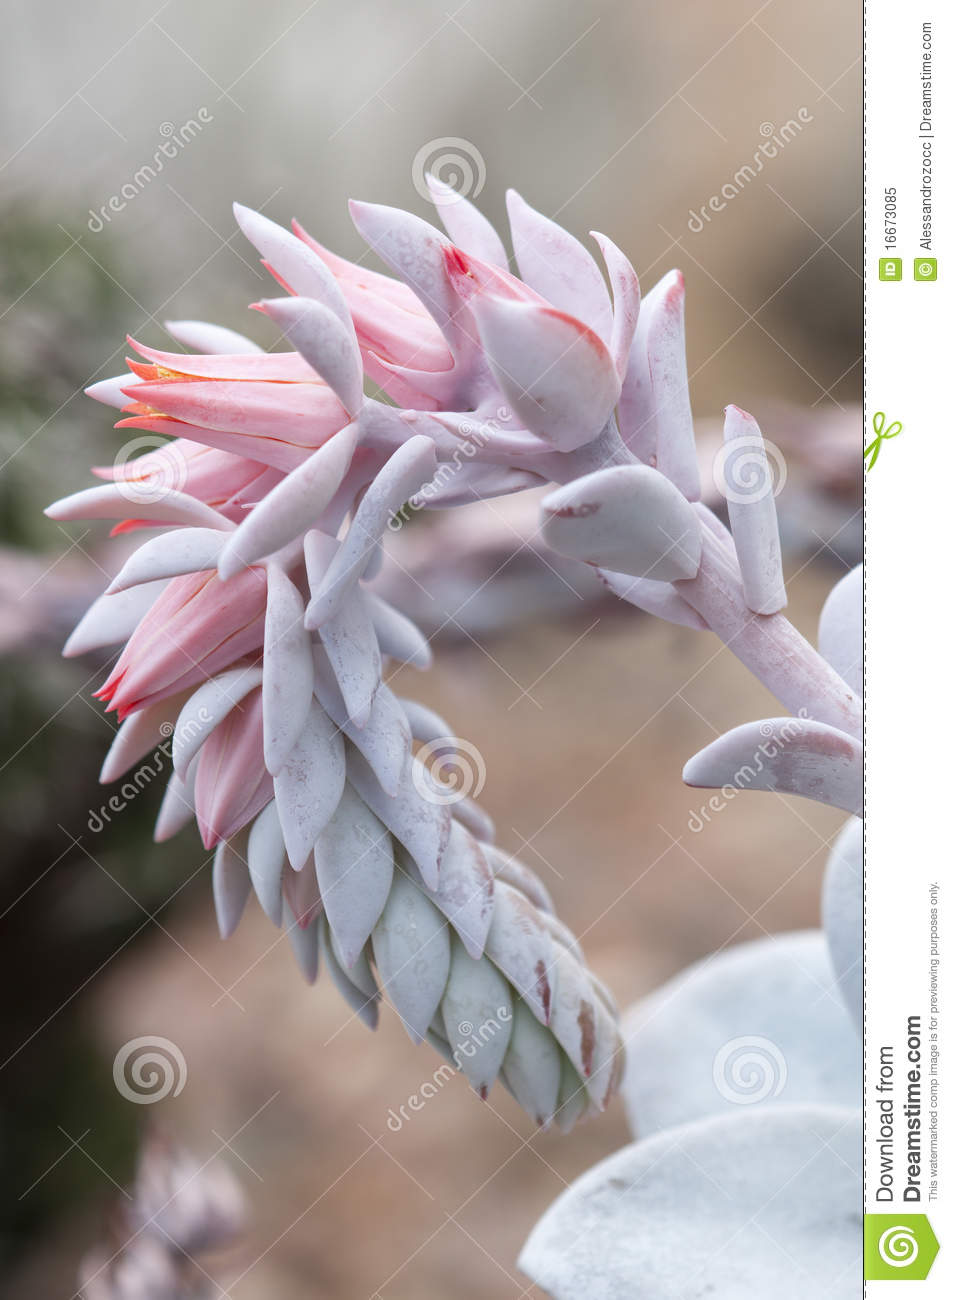 Succulent Plant With Pink Flower Stock Image Image Of Detail